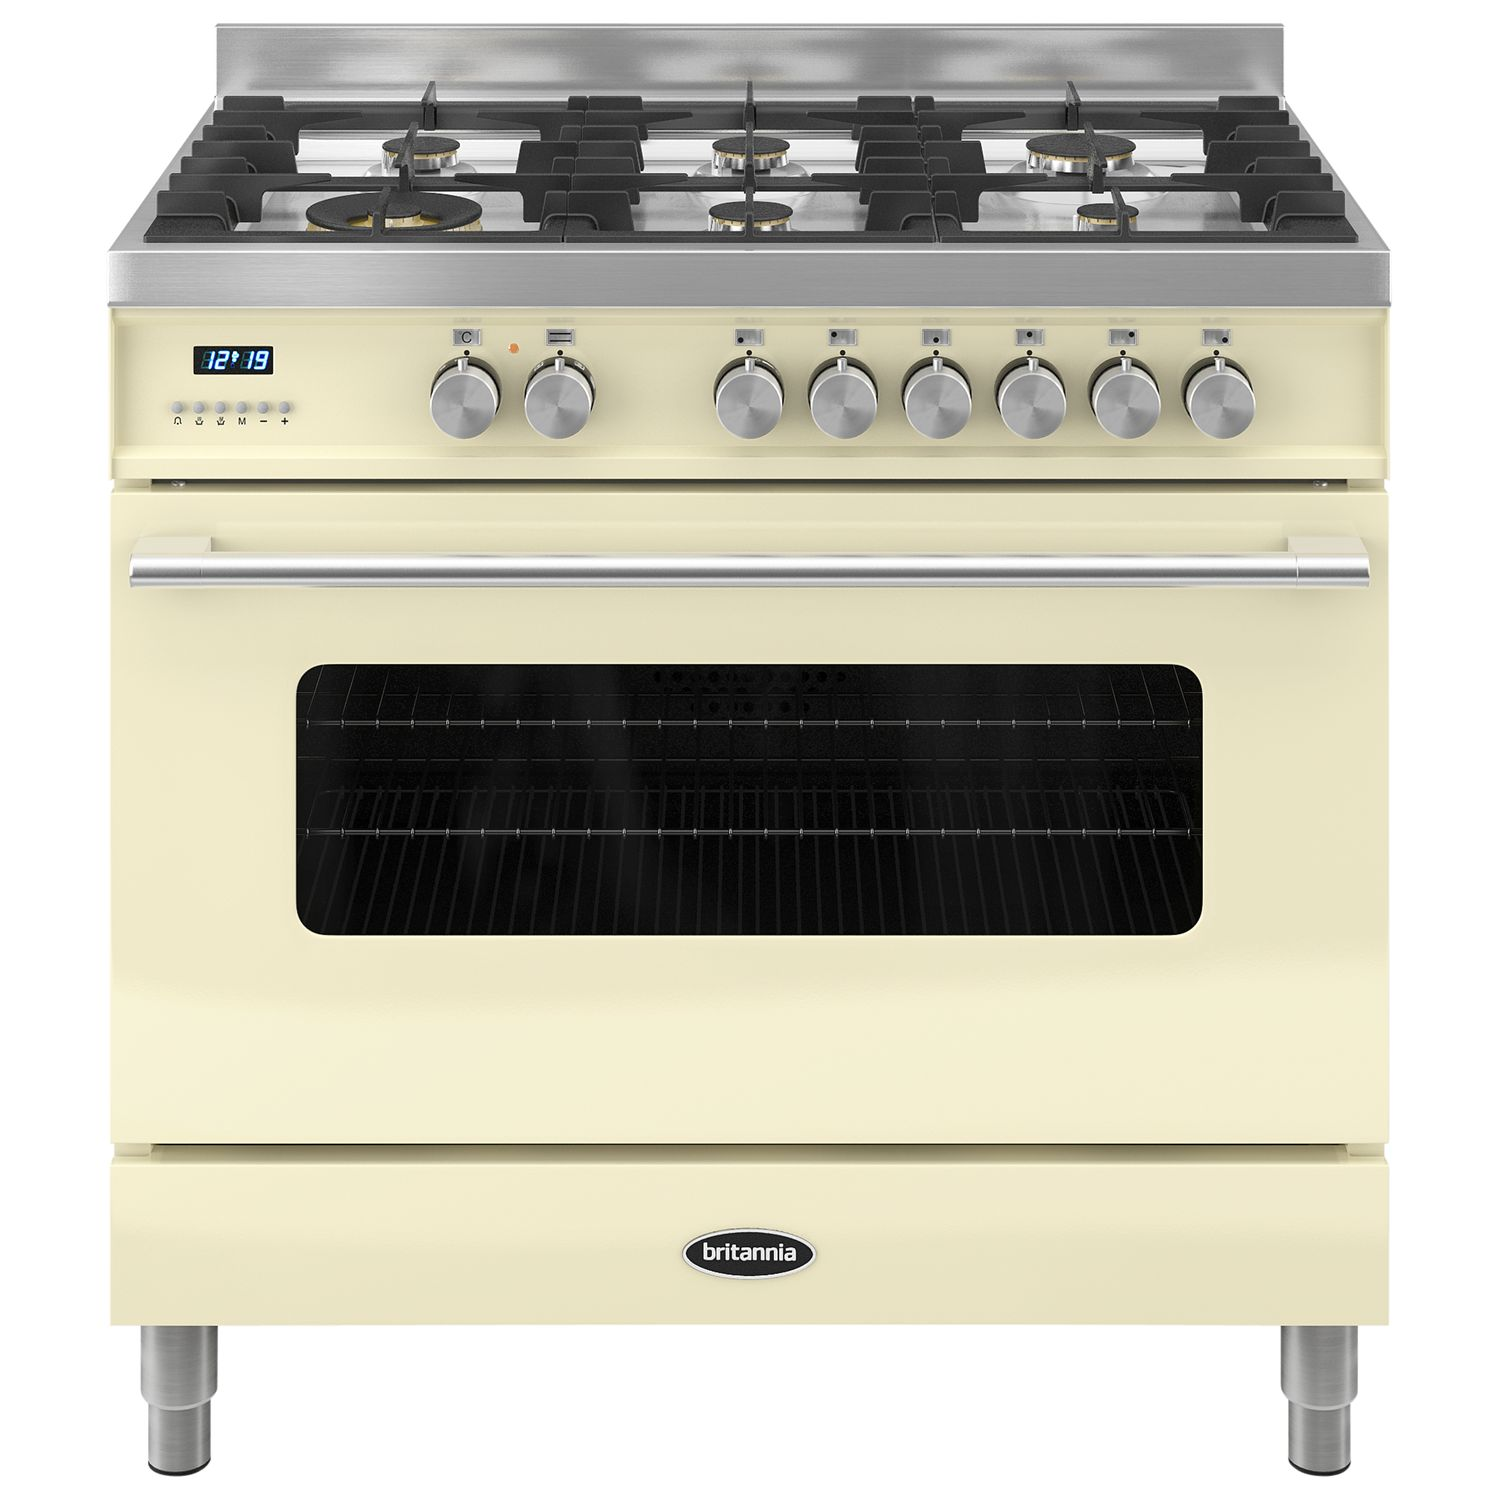 Cooking appliances buying guide for Gas stove buying guide